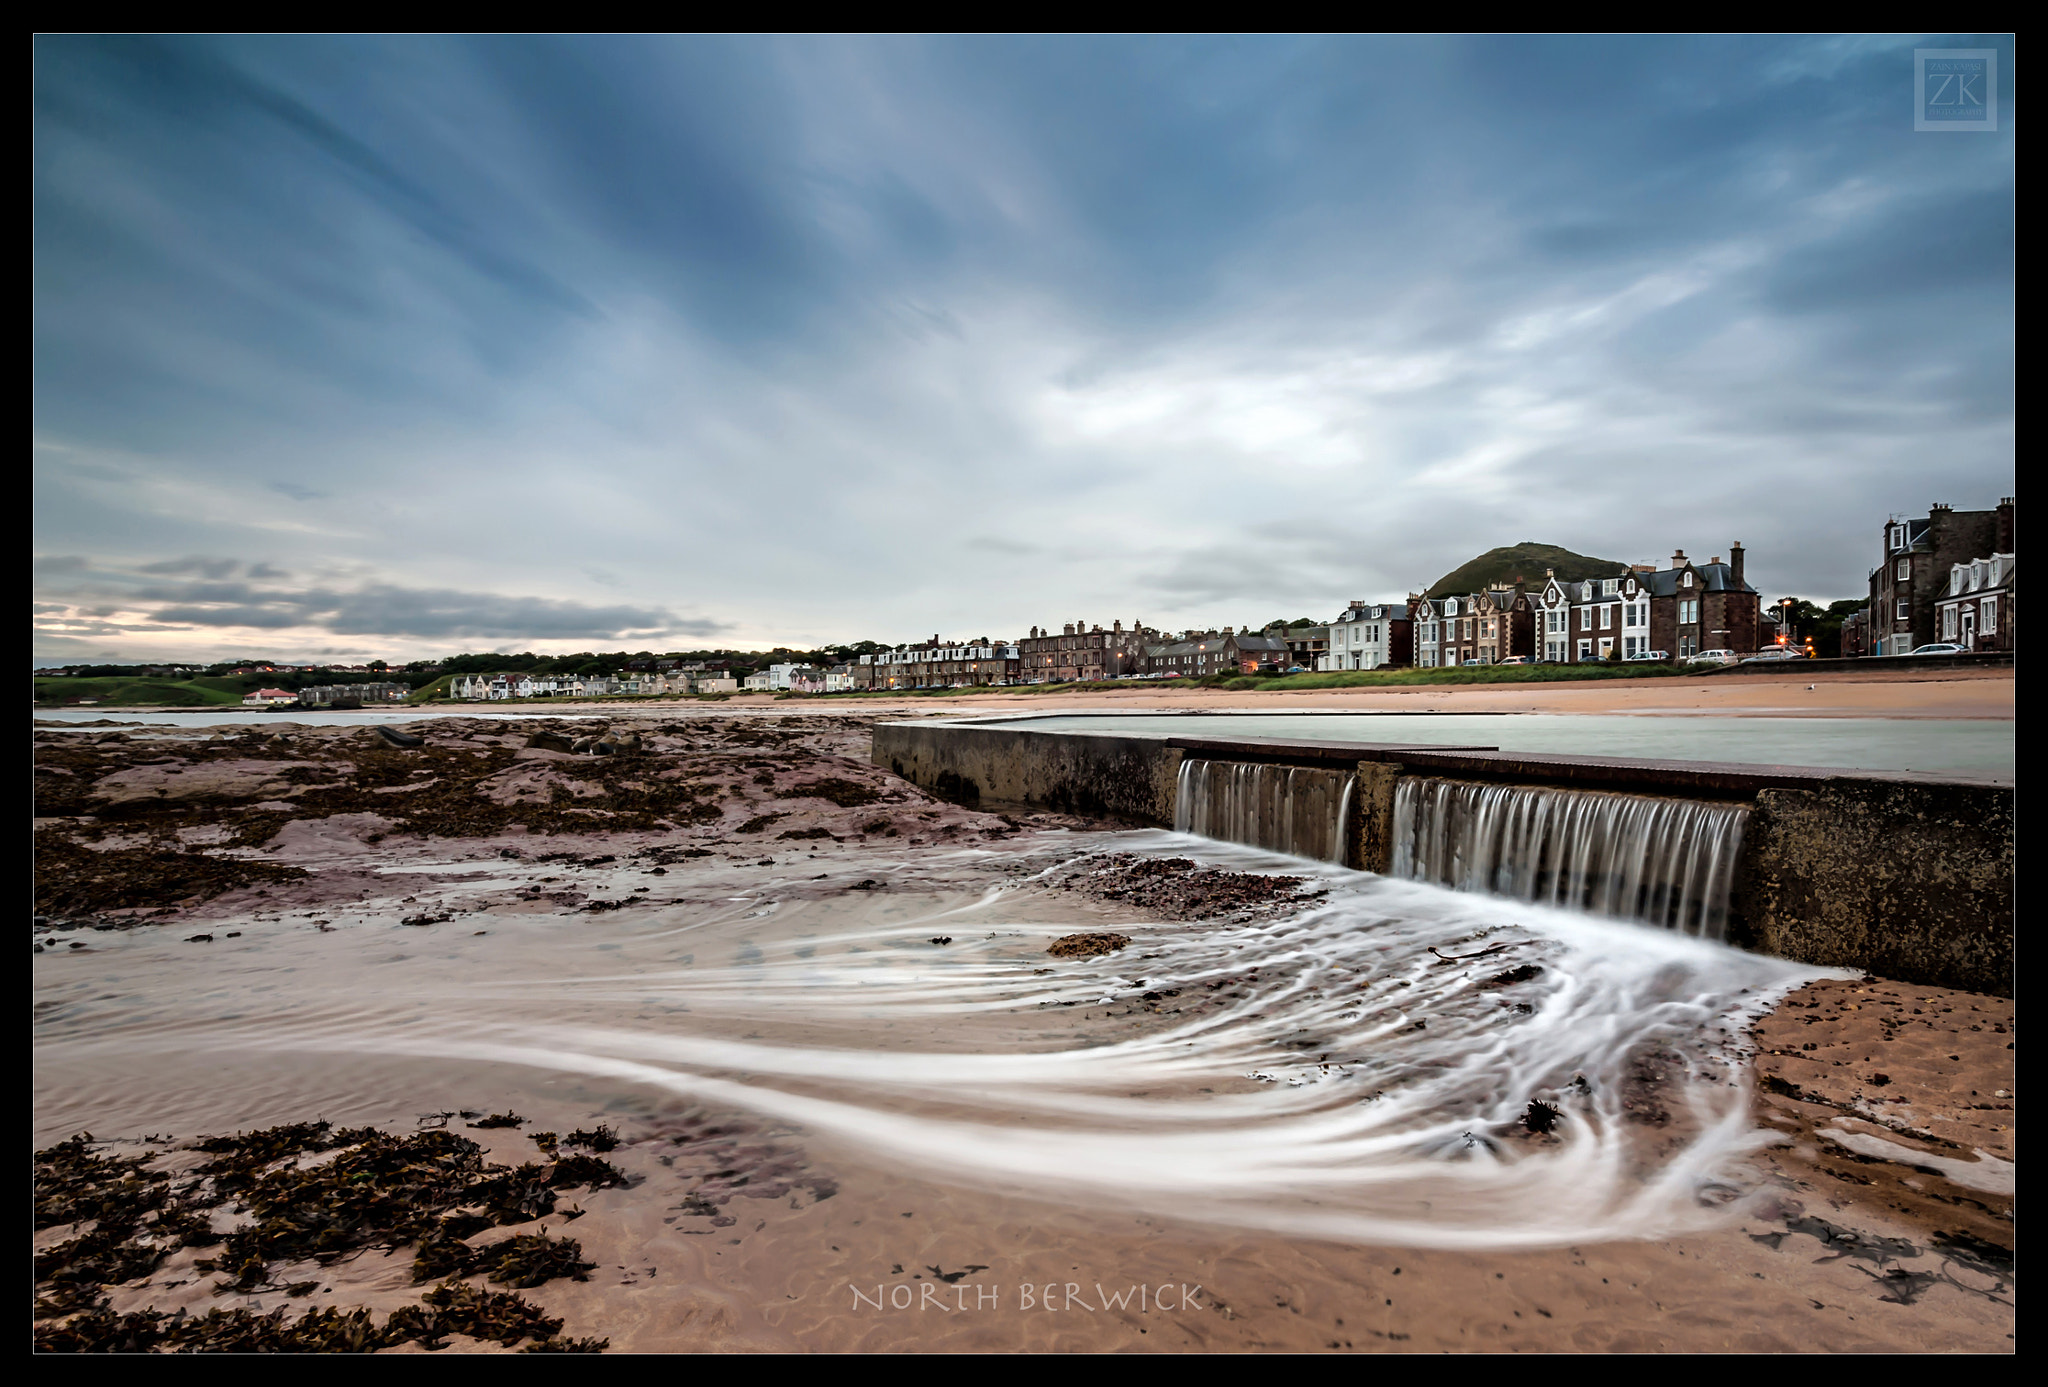 Photograph North Berwick by Zain Kapasi on 500px